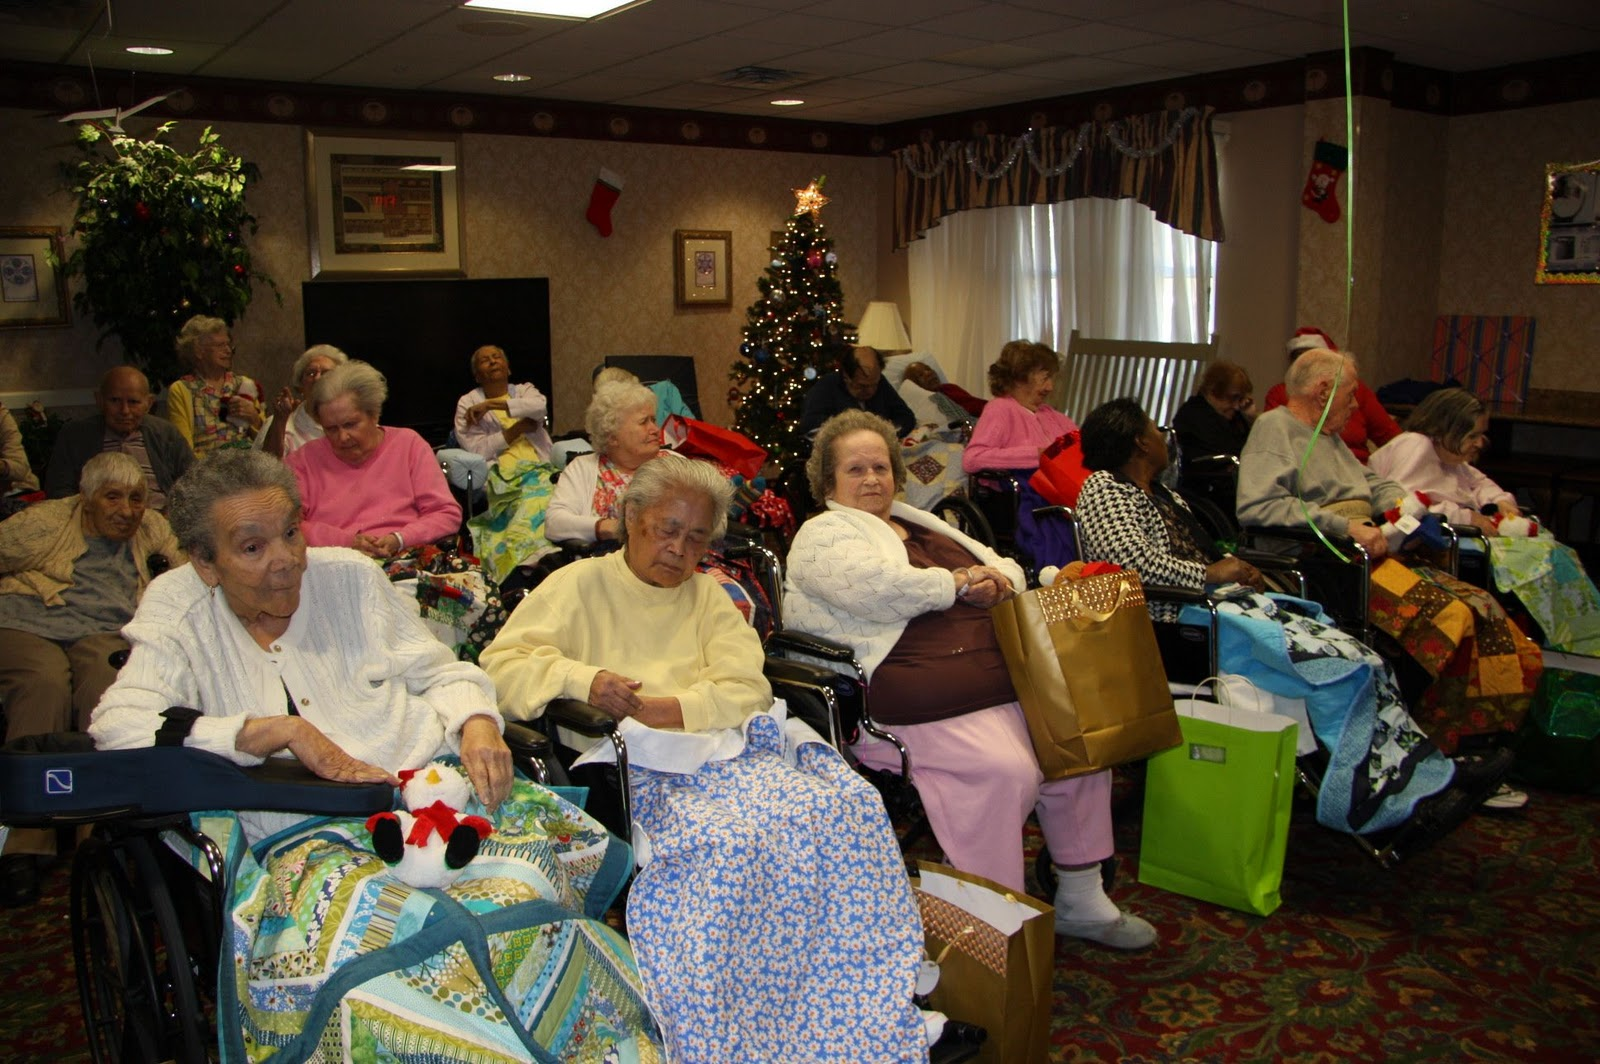 all the gifts were appreciated and the lap quilts in particular were a big hit with the residents what follows are pictures from the event many showing